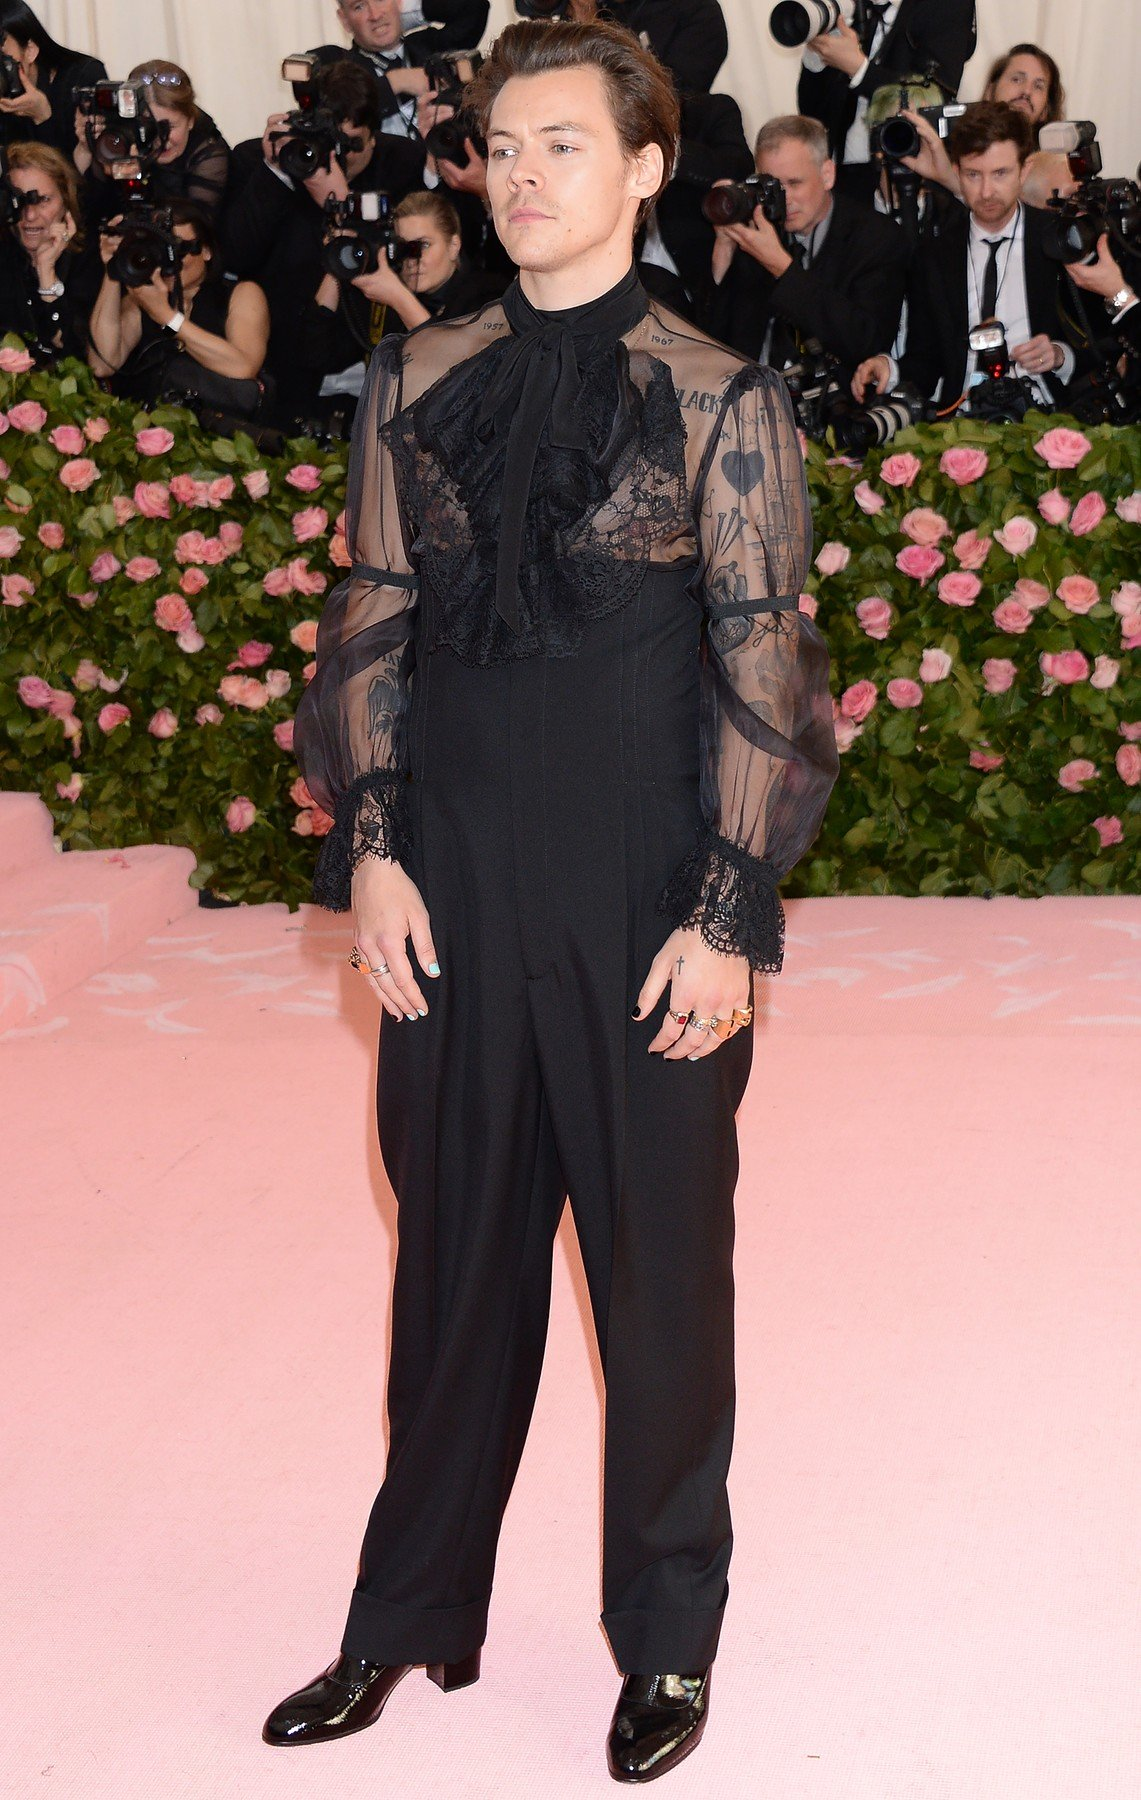 The 2019 Met Gala Celebrating Camp: Notes on Fashion - Arrivals. 06 May 2019, Image: 431339566, License: Rights-managed, Restrictions: NO Argentina, Australia, Belgium, Brazil, Bulgaria, China, Czech Republic, Estonia, Finland, France, Greece, Hong Kong, Hungary, Italy, Japan, Latvia, Lithuania, Luxembourg, Mexico, Netherland Antilles, Netherlands, New Caledonia, Poland, Romania, Russia, Slovakia, Slovenia, Spain, Sweden, Switzerland, Taiwan, Model Release: no, Credit line: Profimedia, Mega Agency